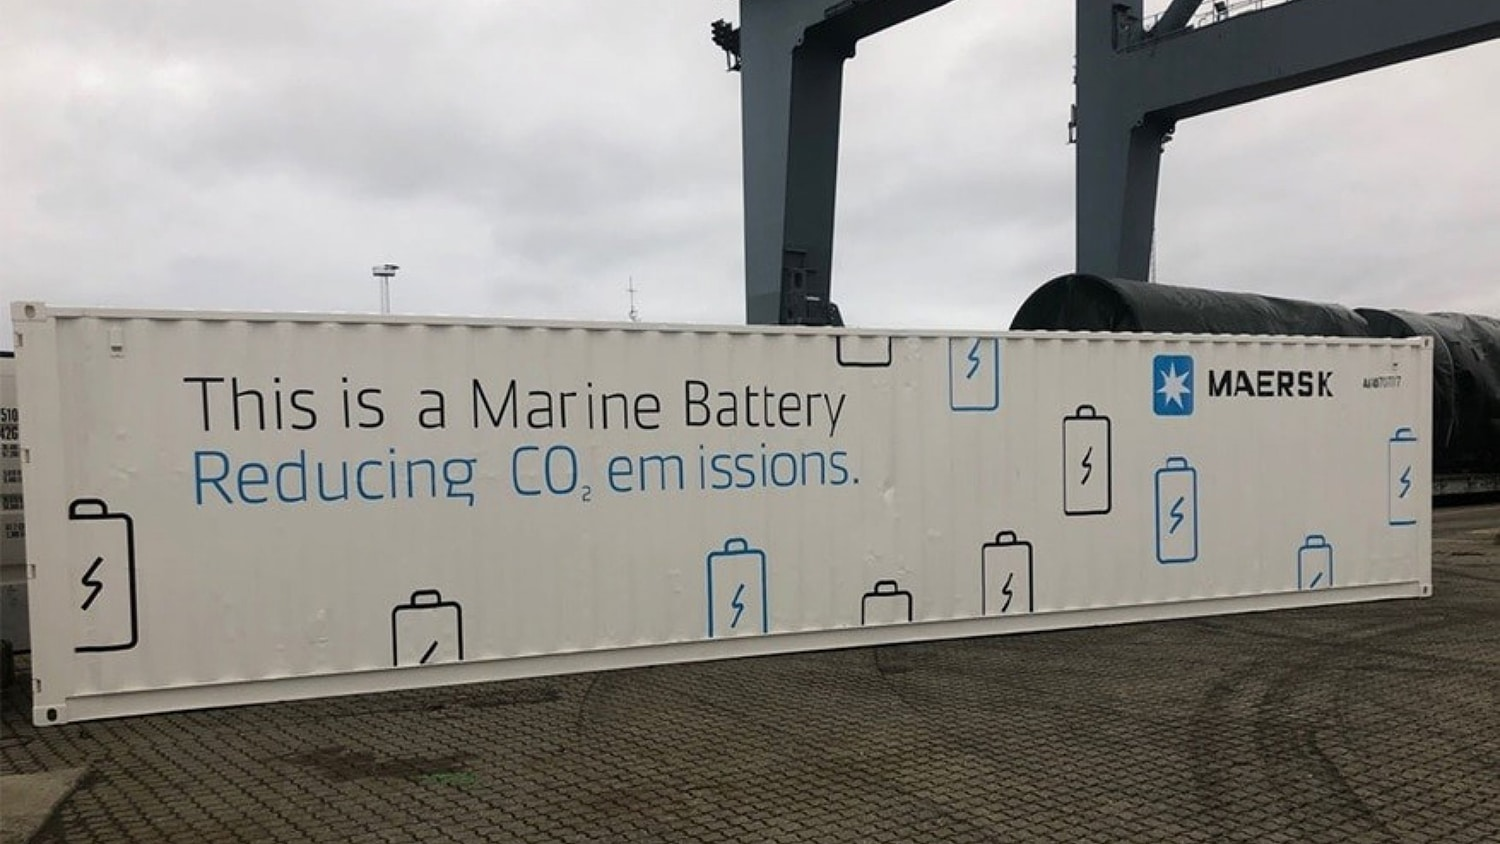 Maersk's giant marine battery to improve vessel performance